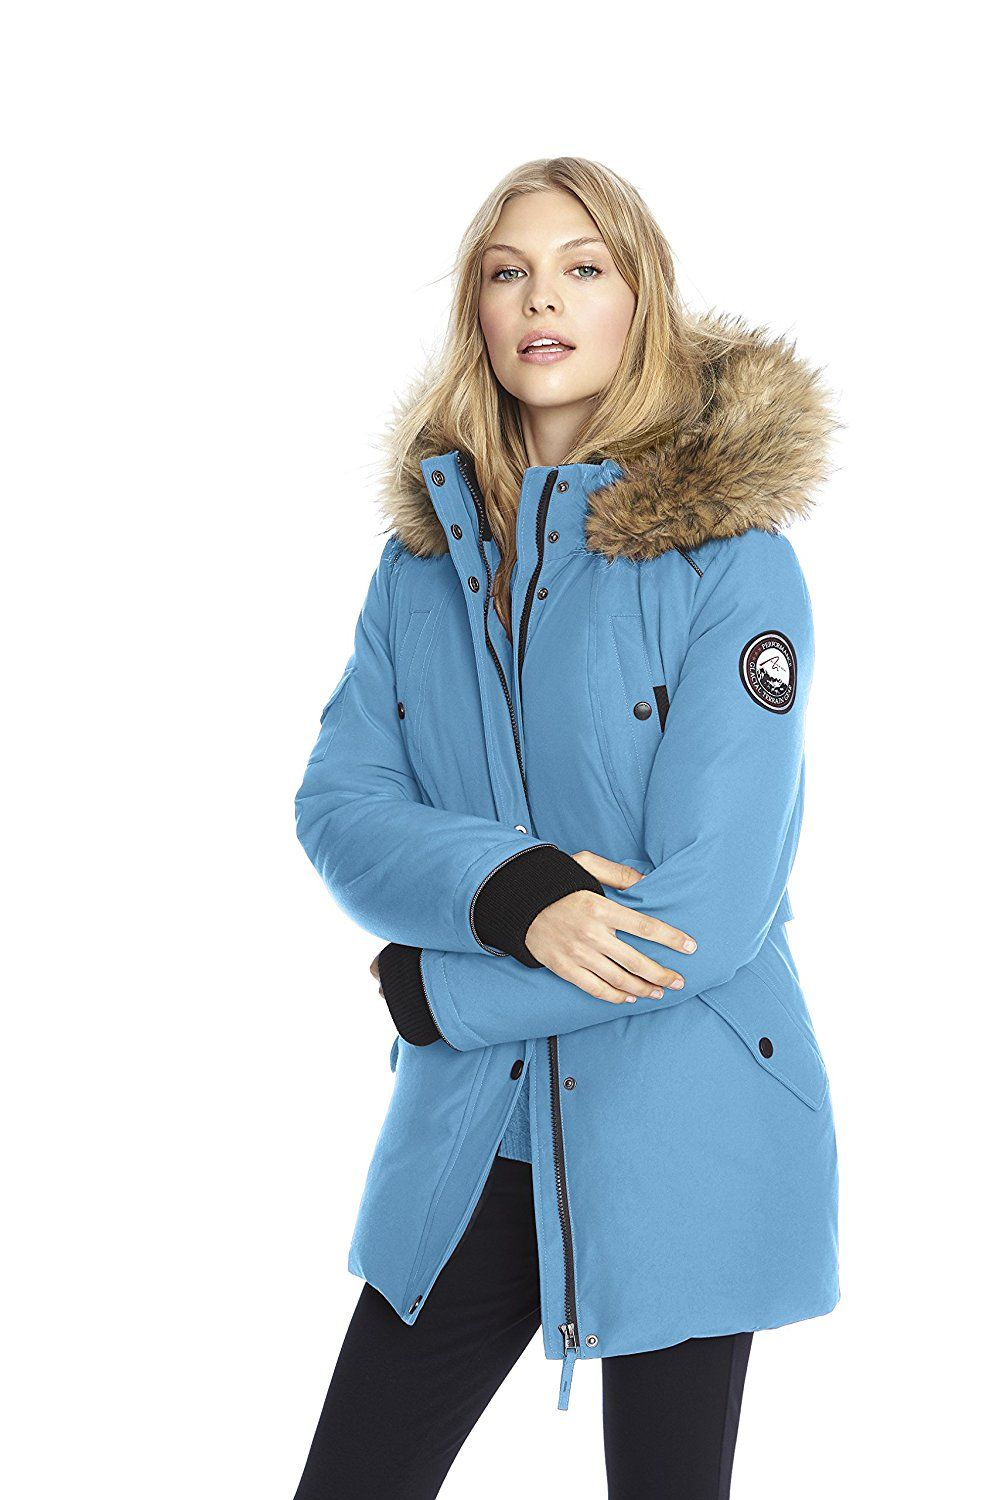 6788a17819c6 Amazon.com: Alpinetek Women's Down Mid Length Parka Coat (Small,  Turquoise): Clothing